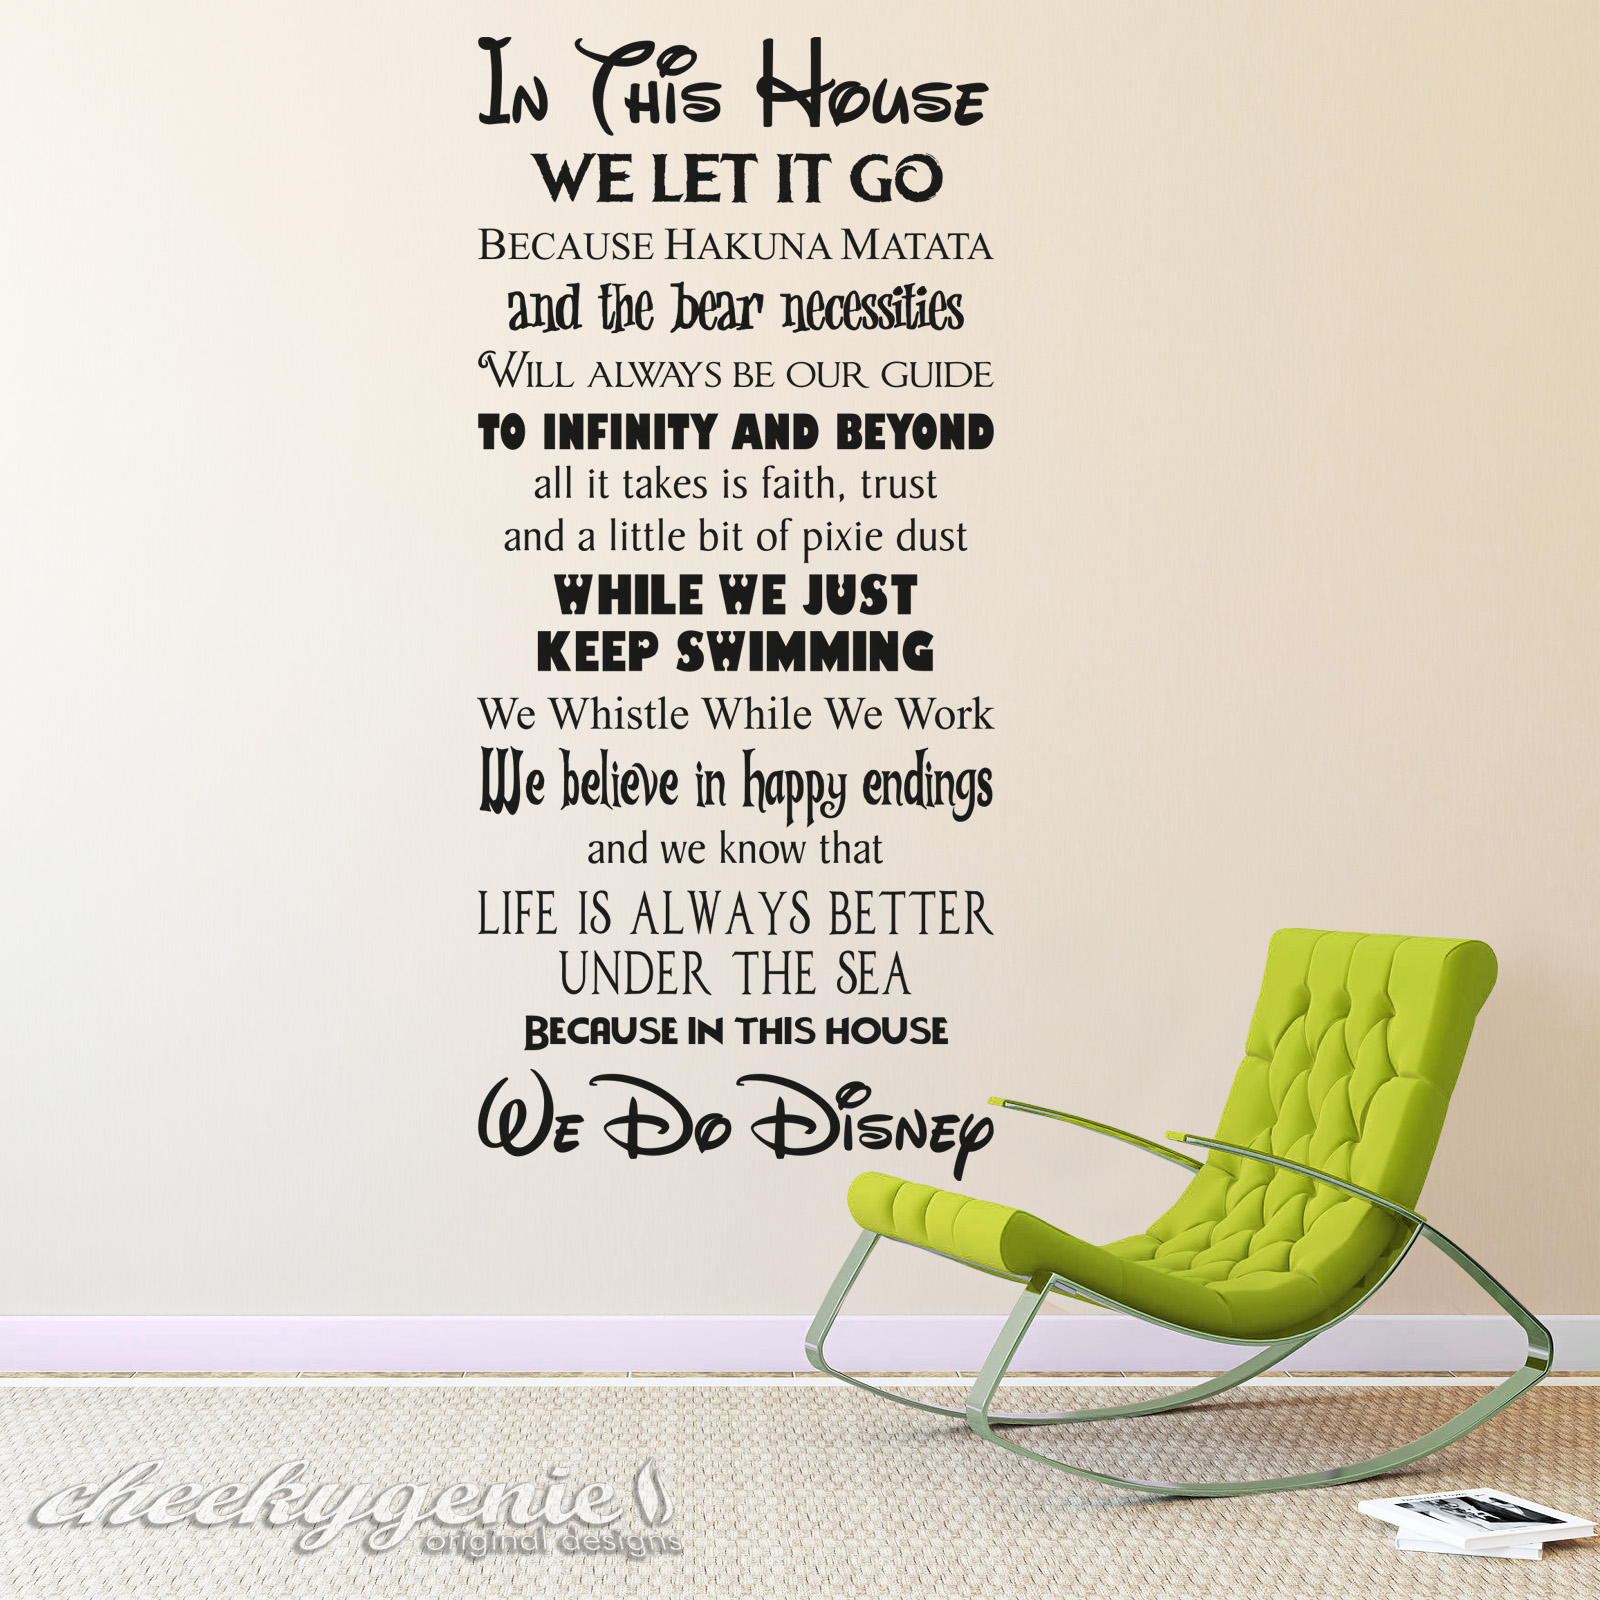 In this house we do disney style quote rules vinyl wall art in this house we do disney vinyl wall art amipublicfo Choice Image